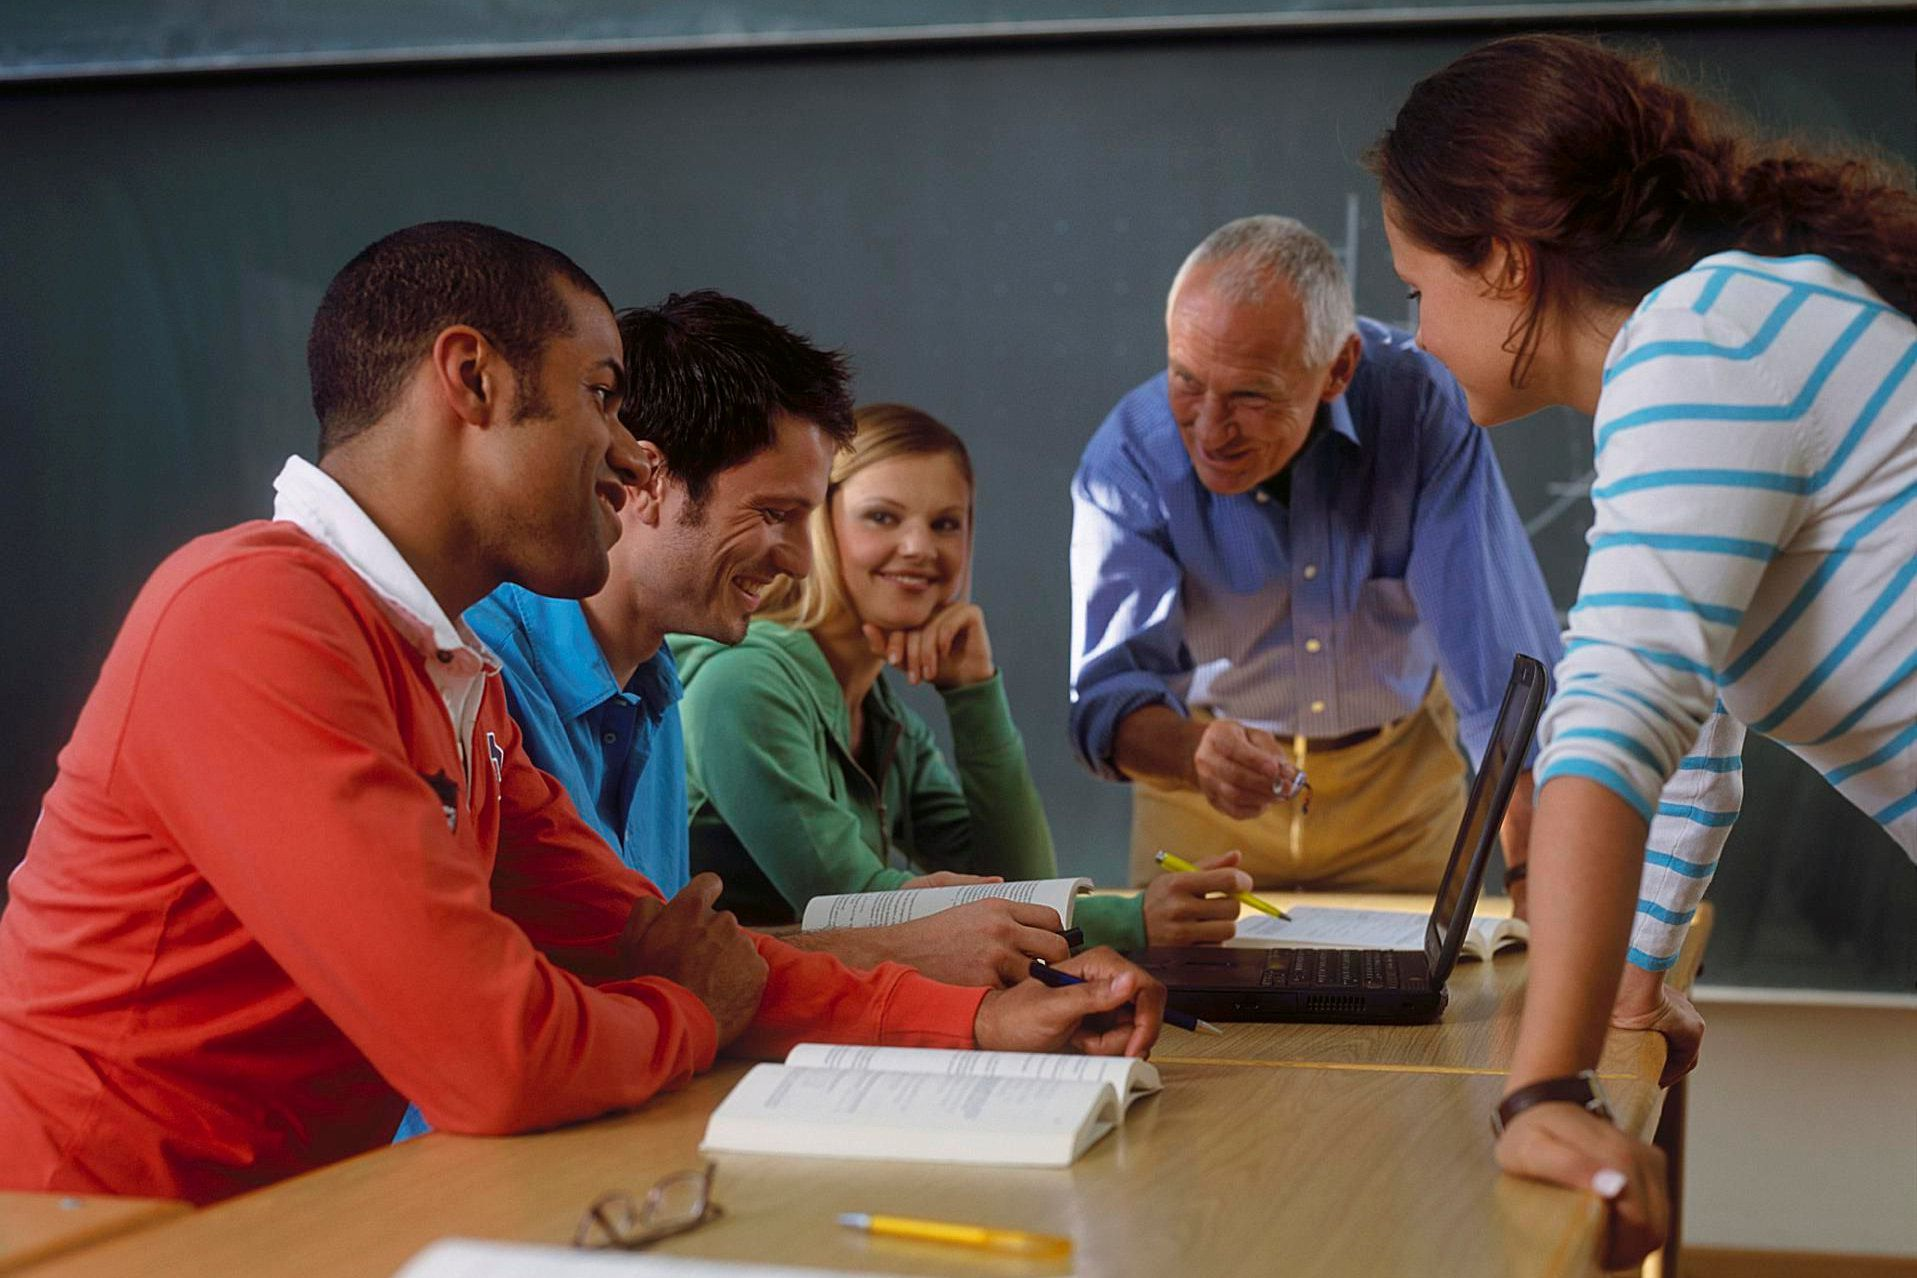 How To Make Lesson Plans For Adult Students